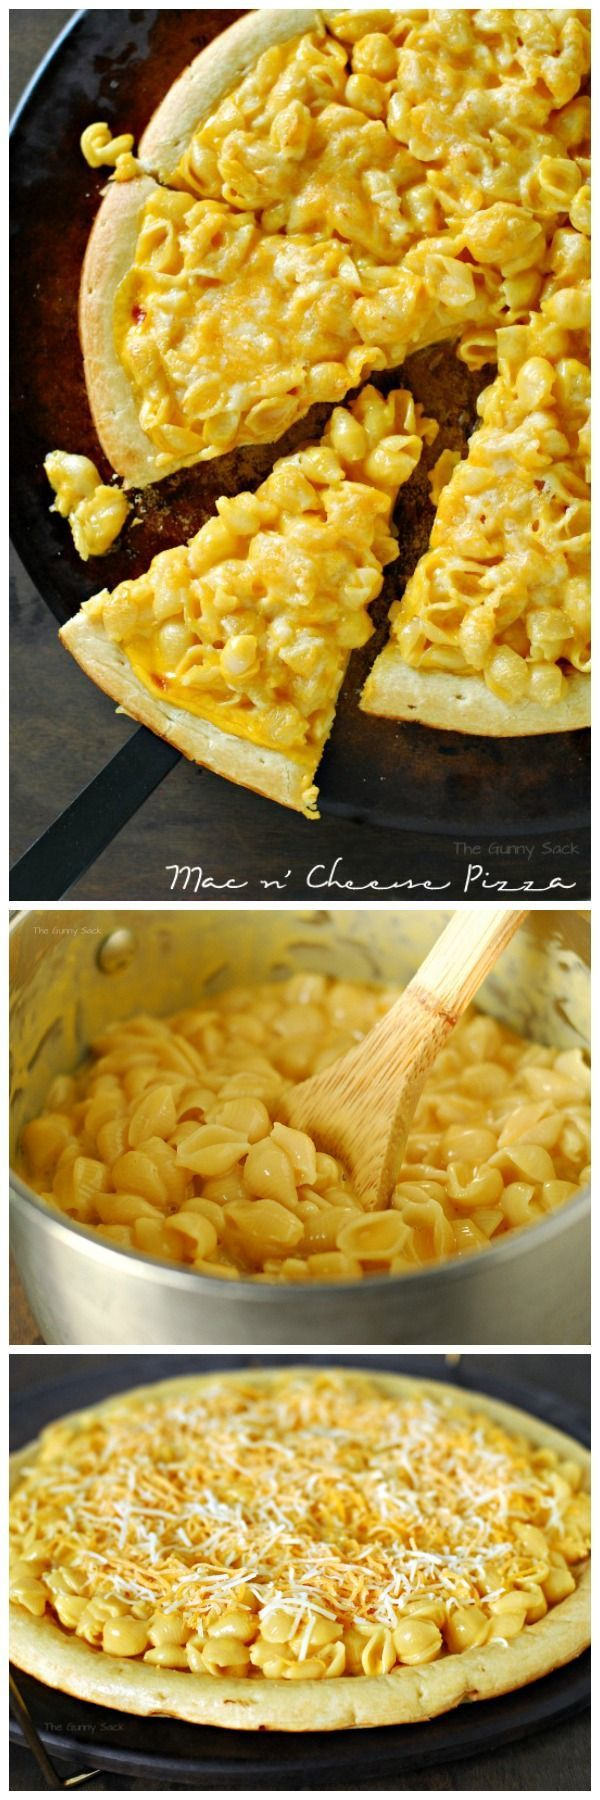 Take macaroni and cheese to the next level with Mac n' Cheese Pizza Sagine☀️